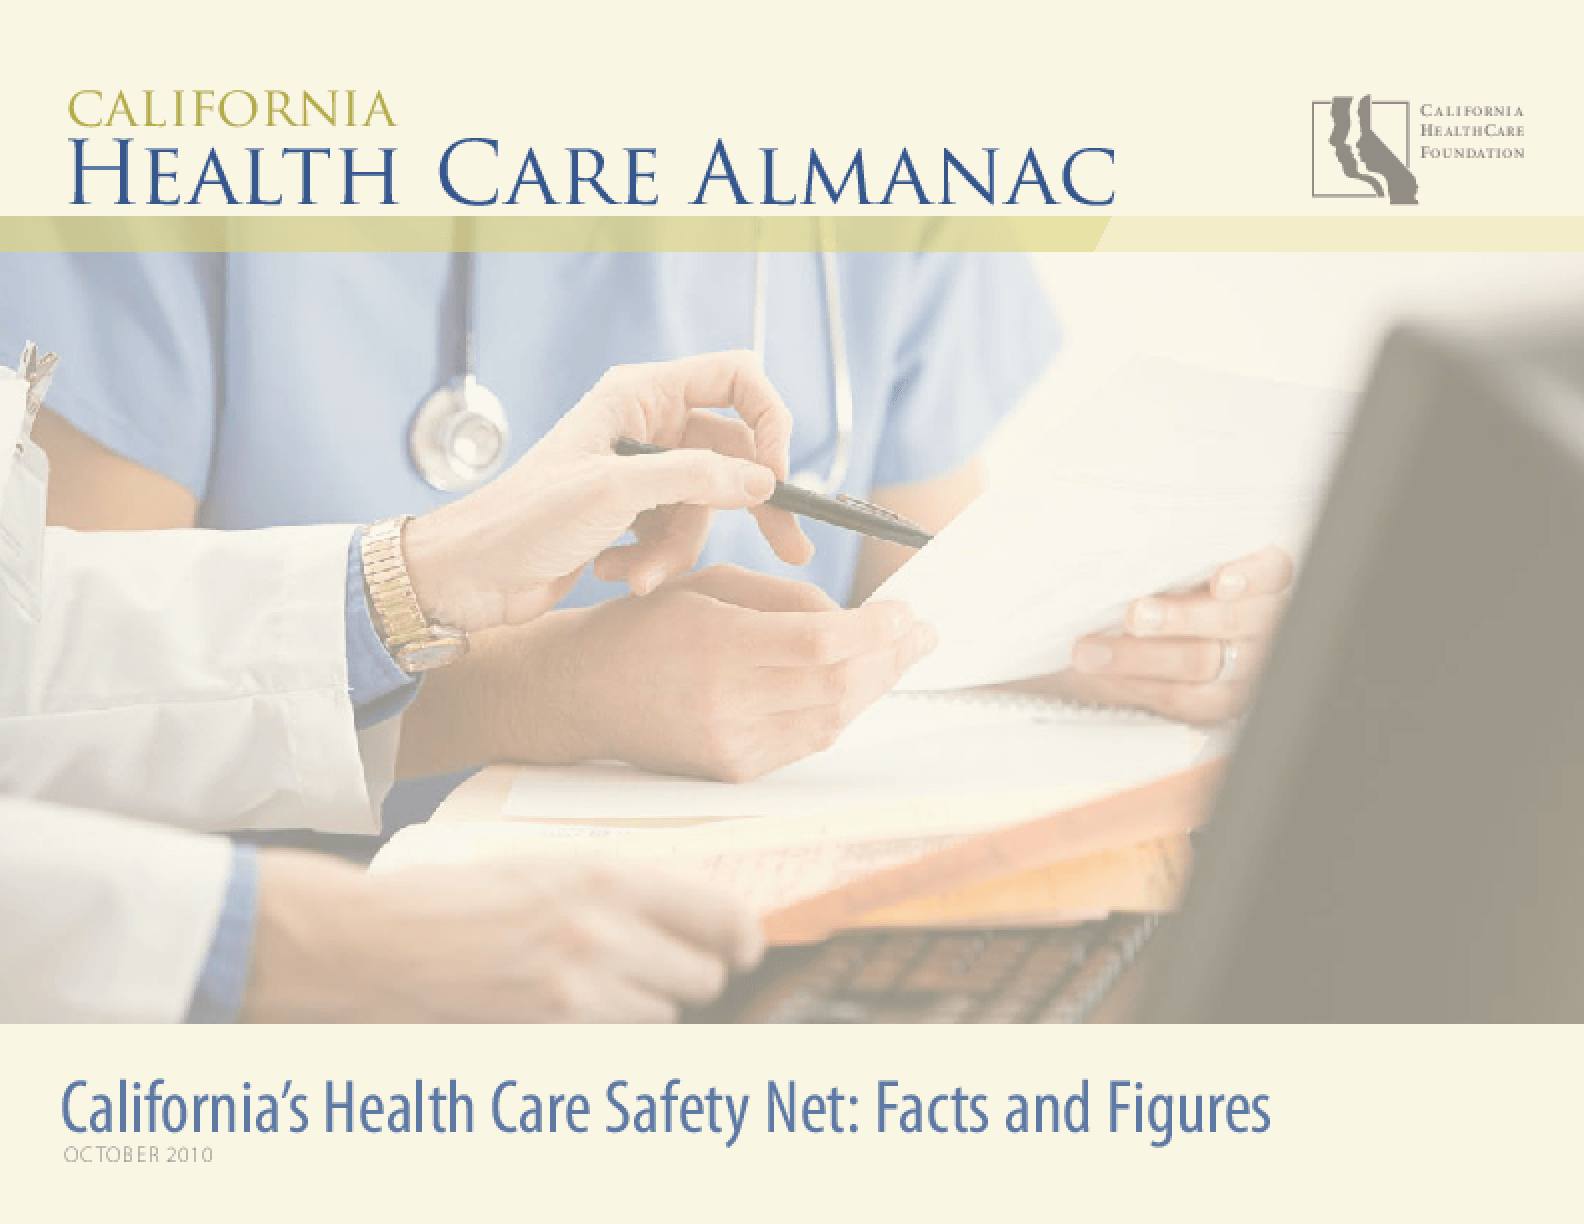 California's Health Care Safety Net: Facts and Figures